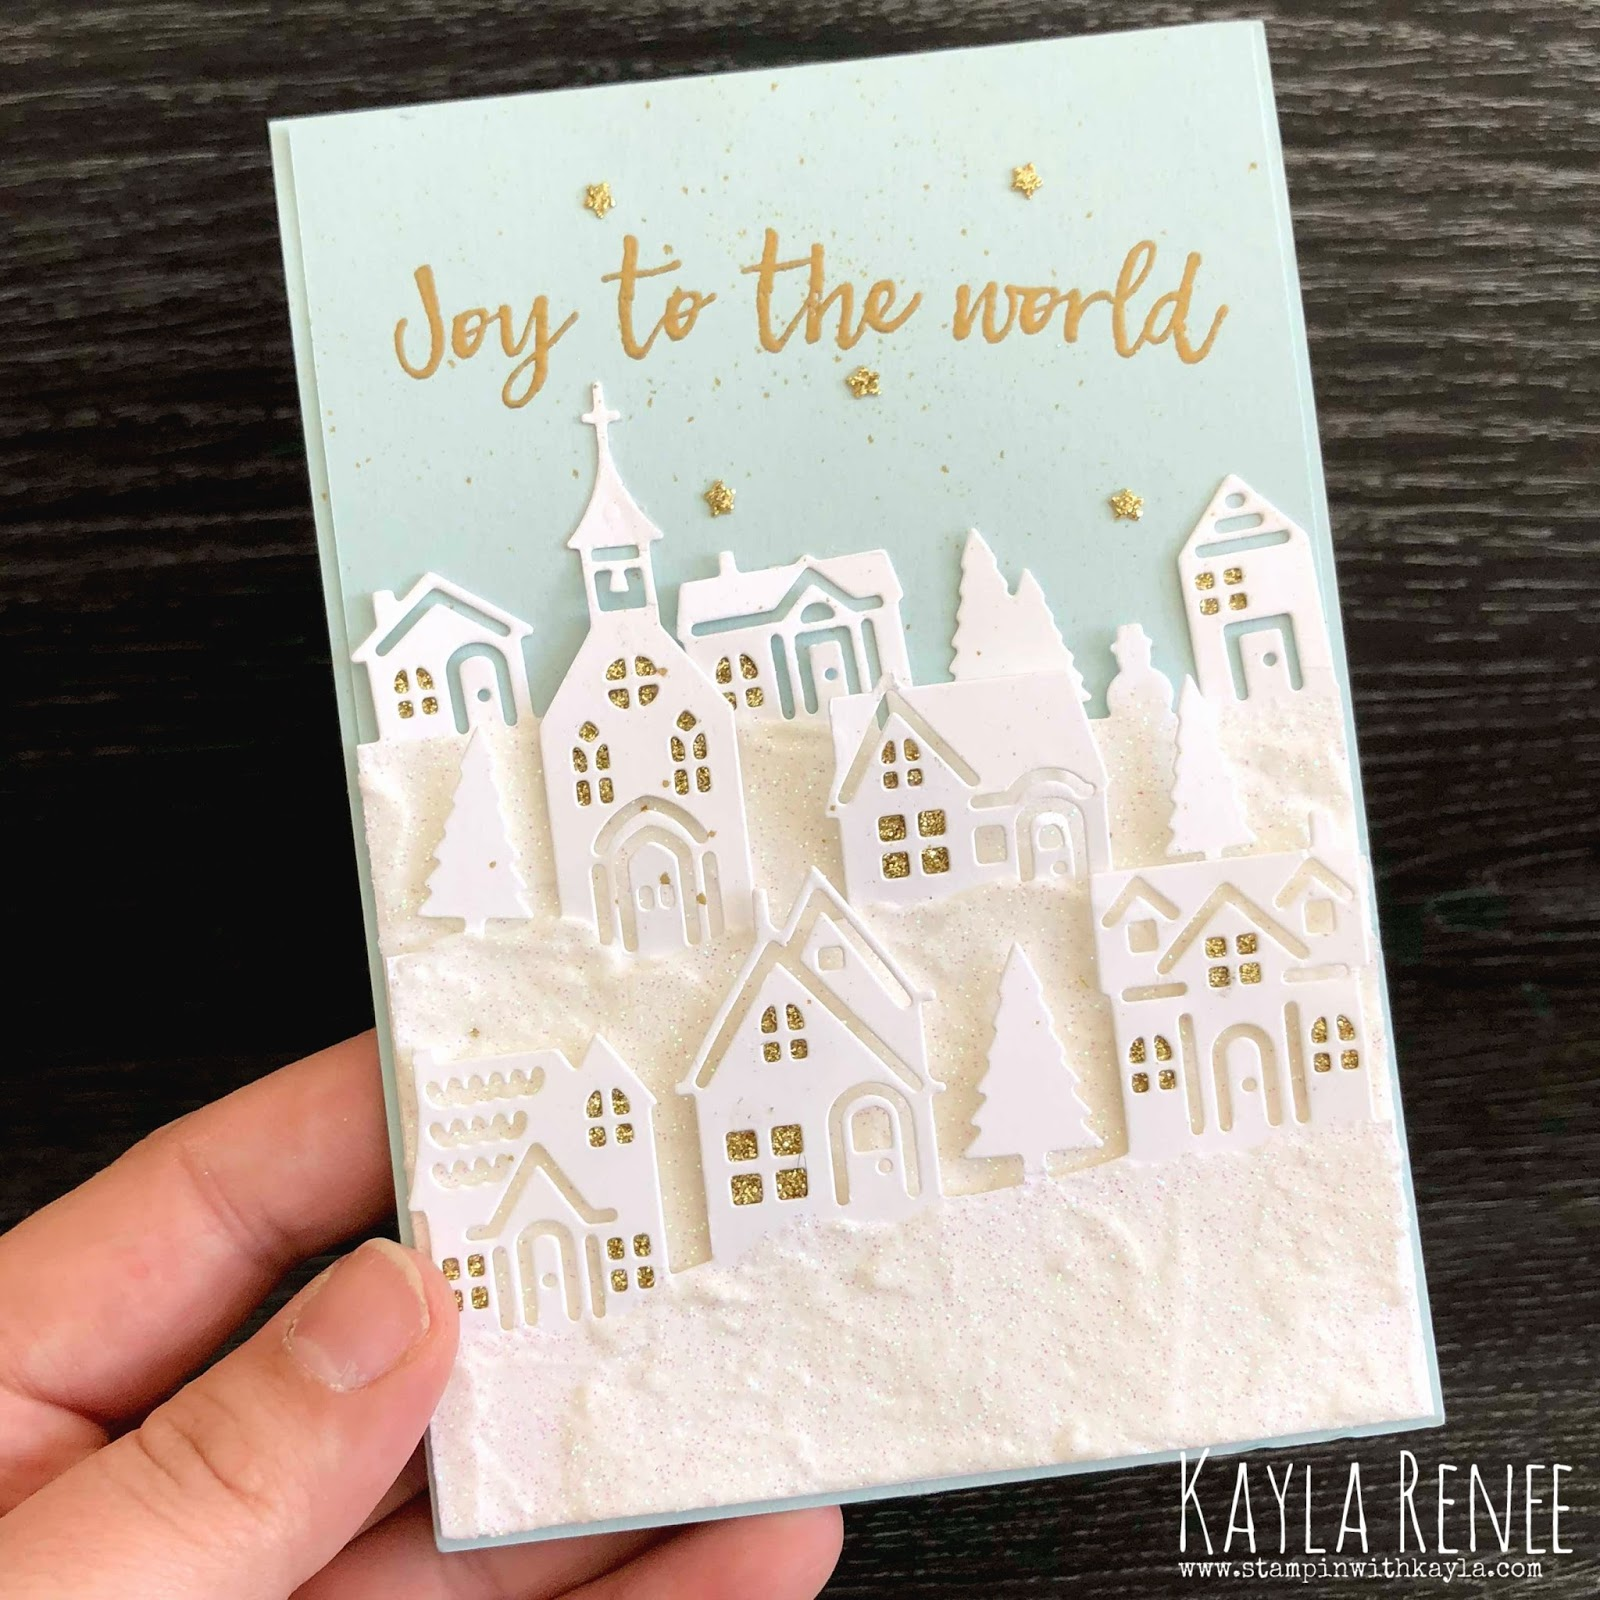 Joy to The World ~ Hearts Come Home